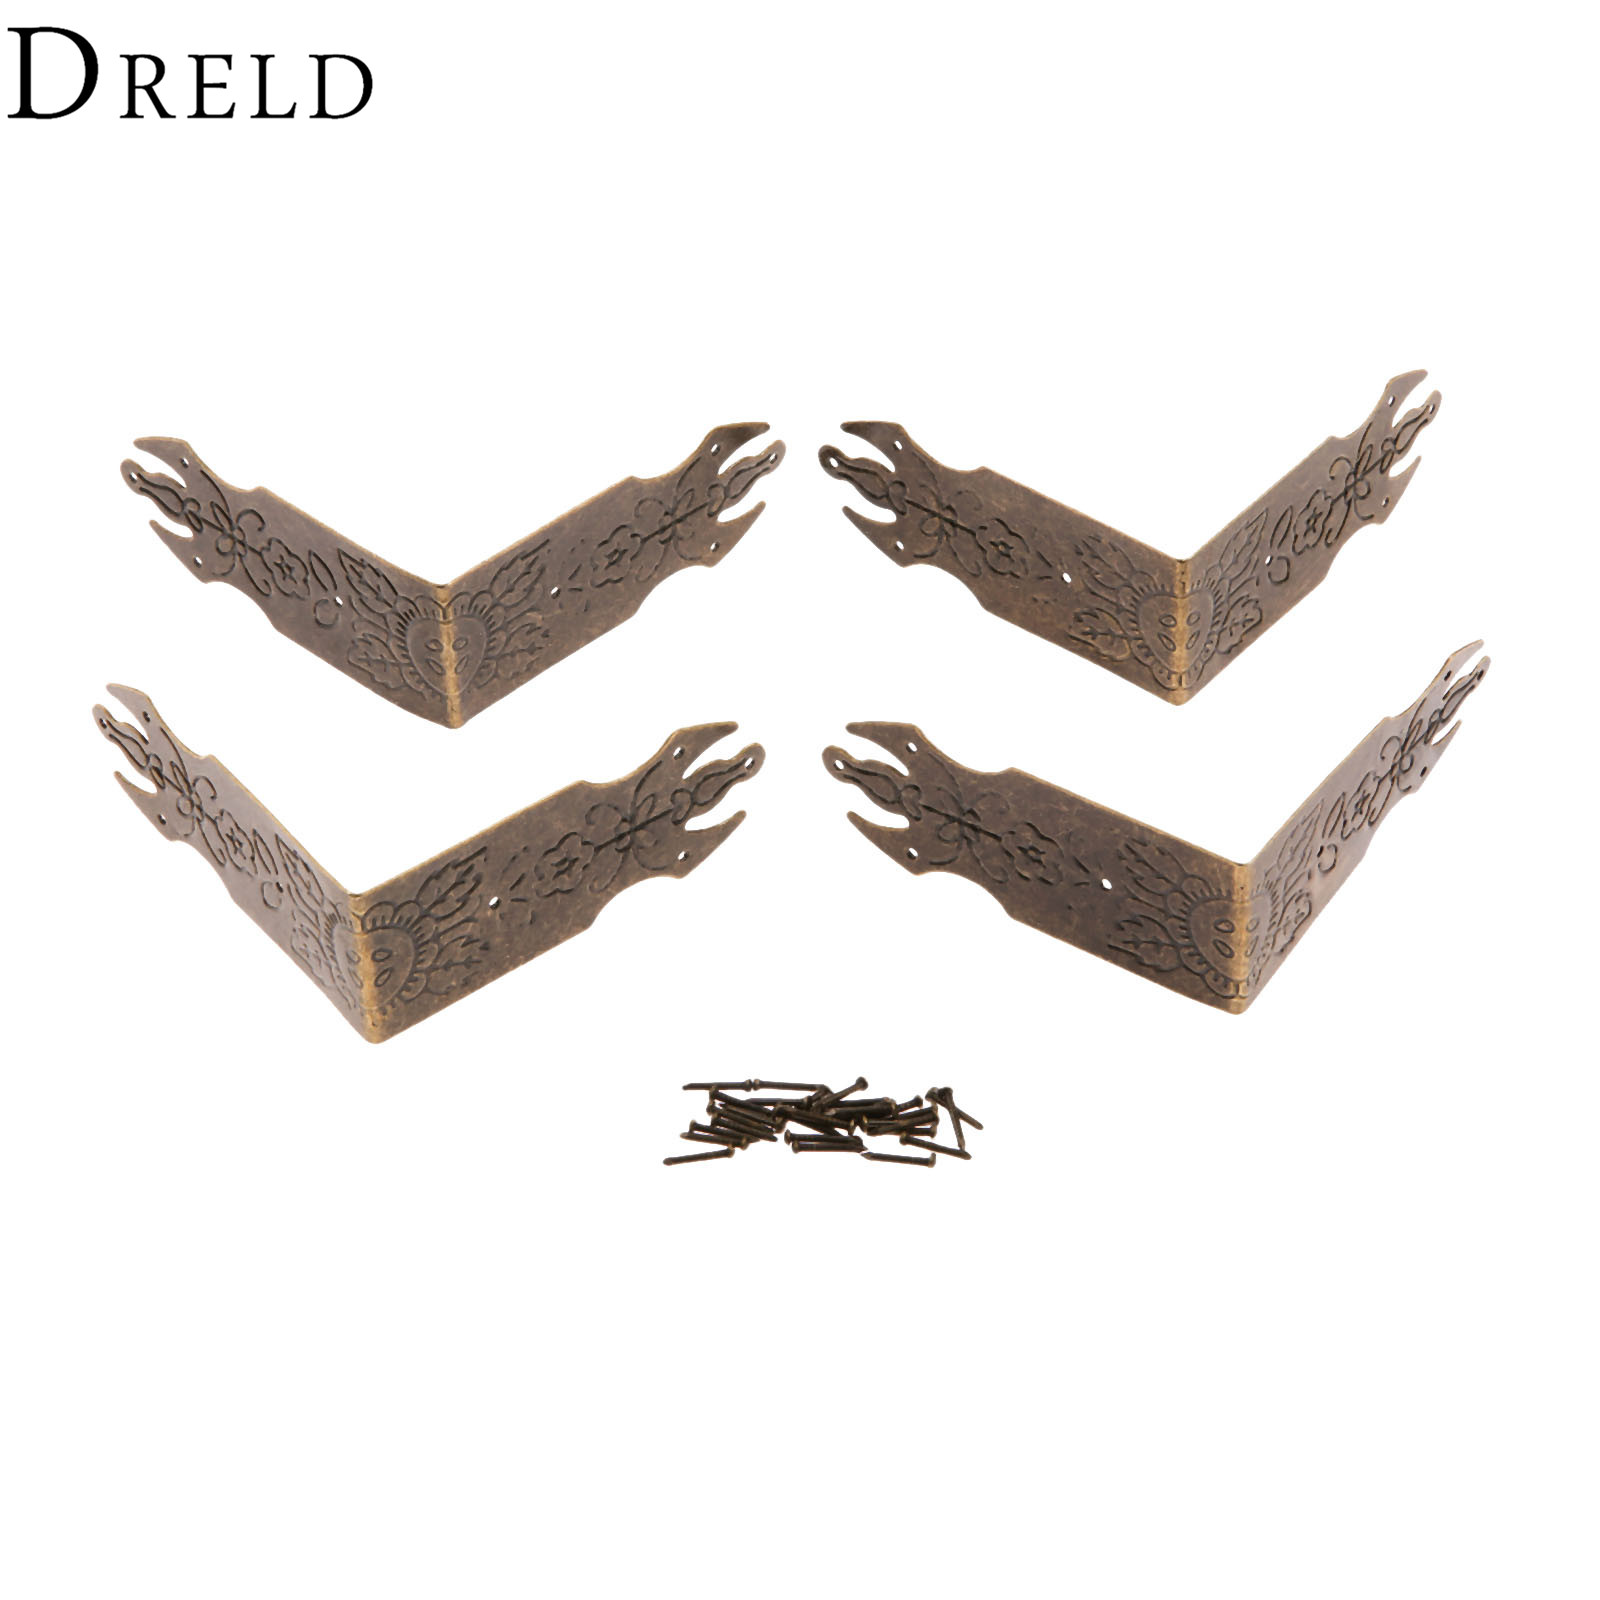 DRELD 4Pcs 69mm Antique Bronze Decorative Jewelry Gift Box Wooden Case Corner Protector Guard Metal Crafts Furniture Fittings allen roth brinkley handsome oil rubbed bronze metal toothbrush holder